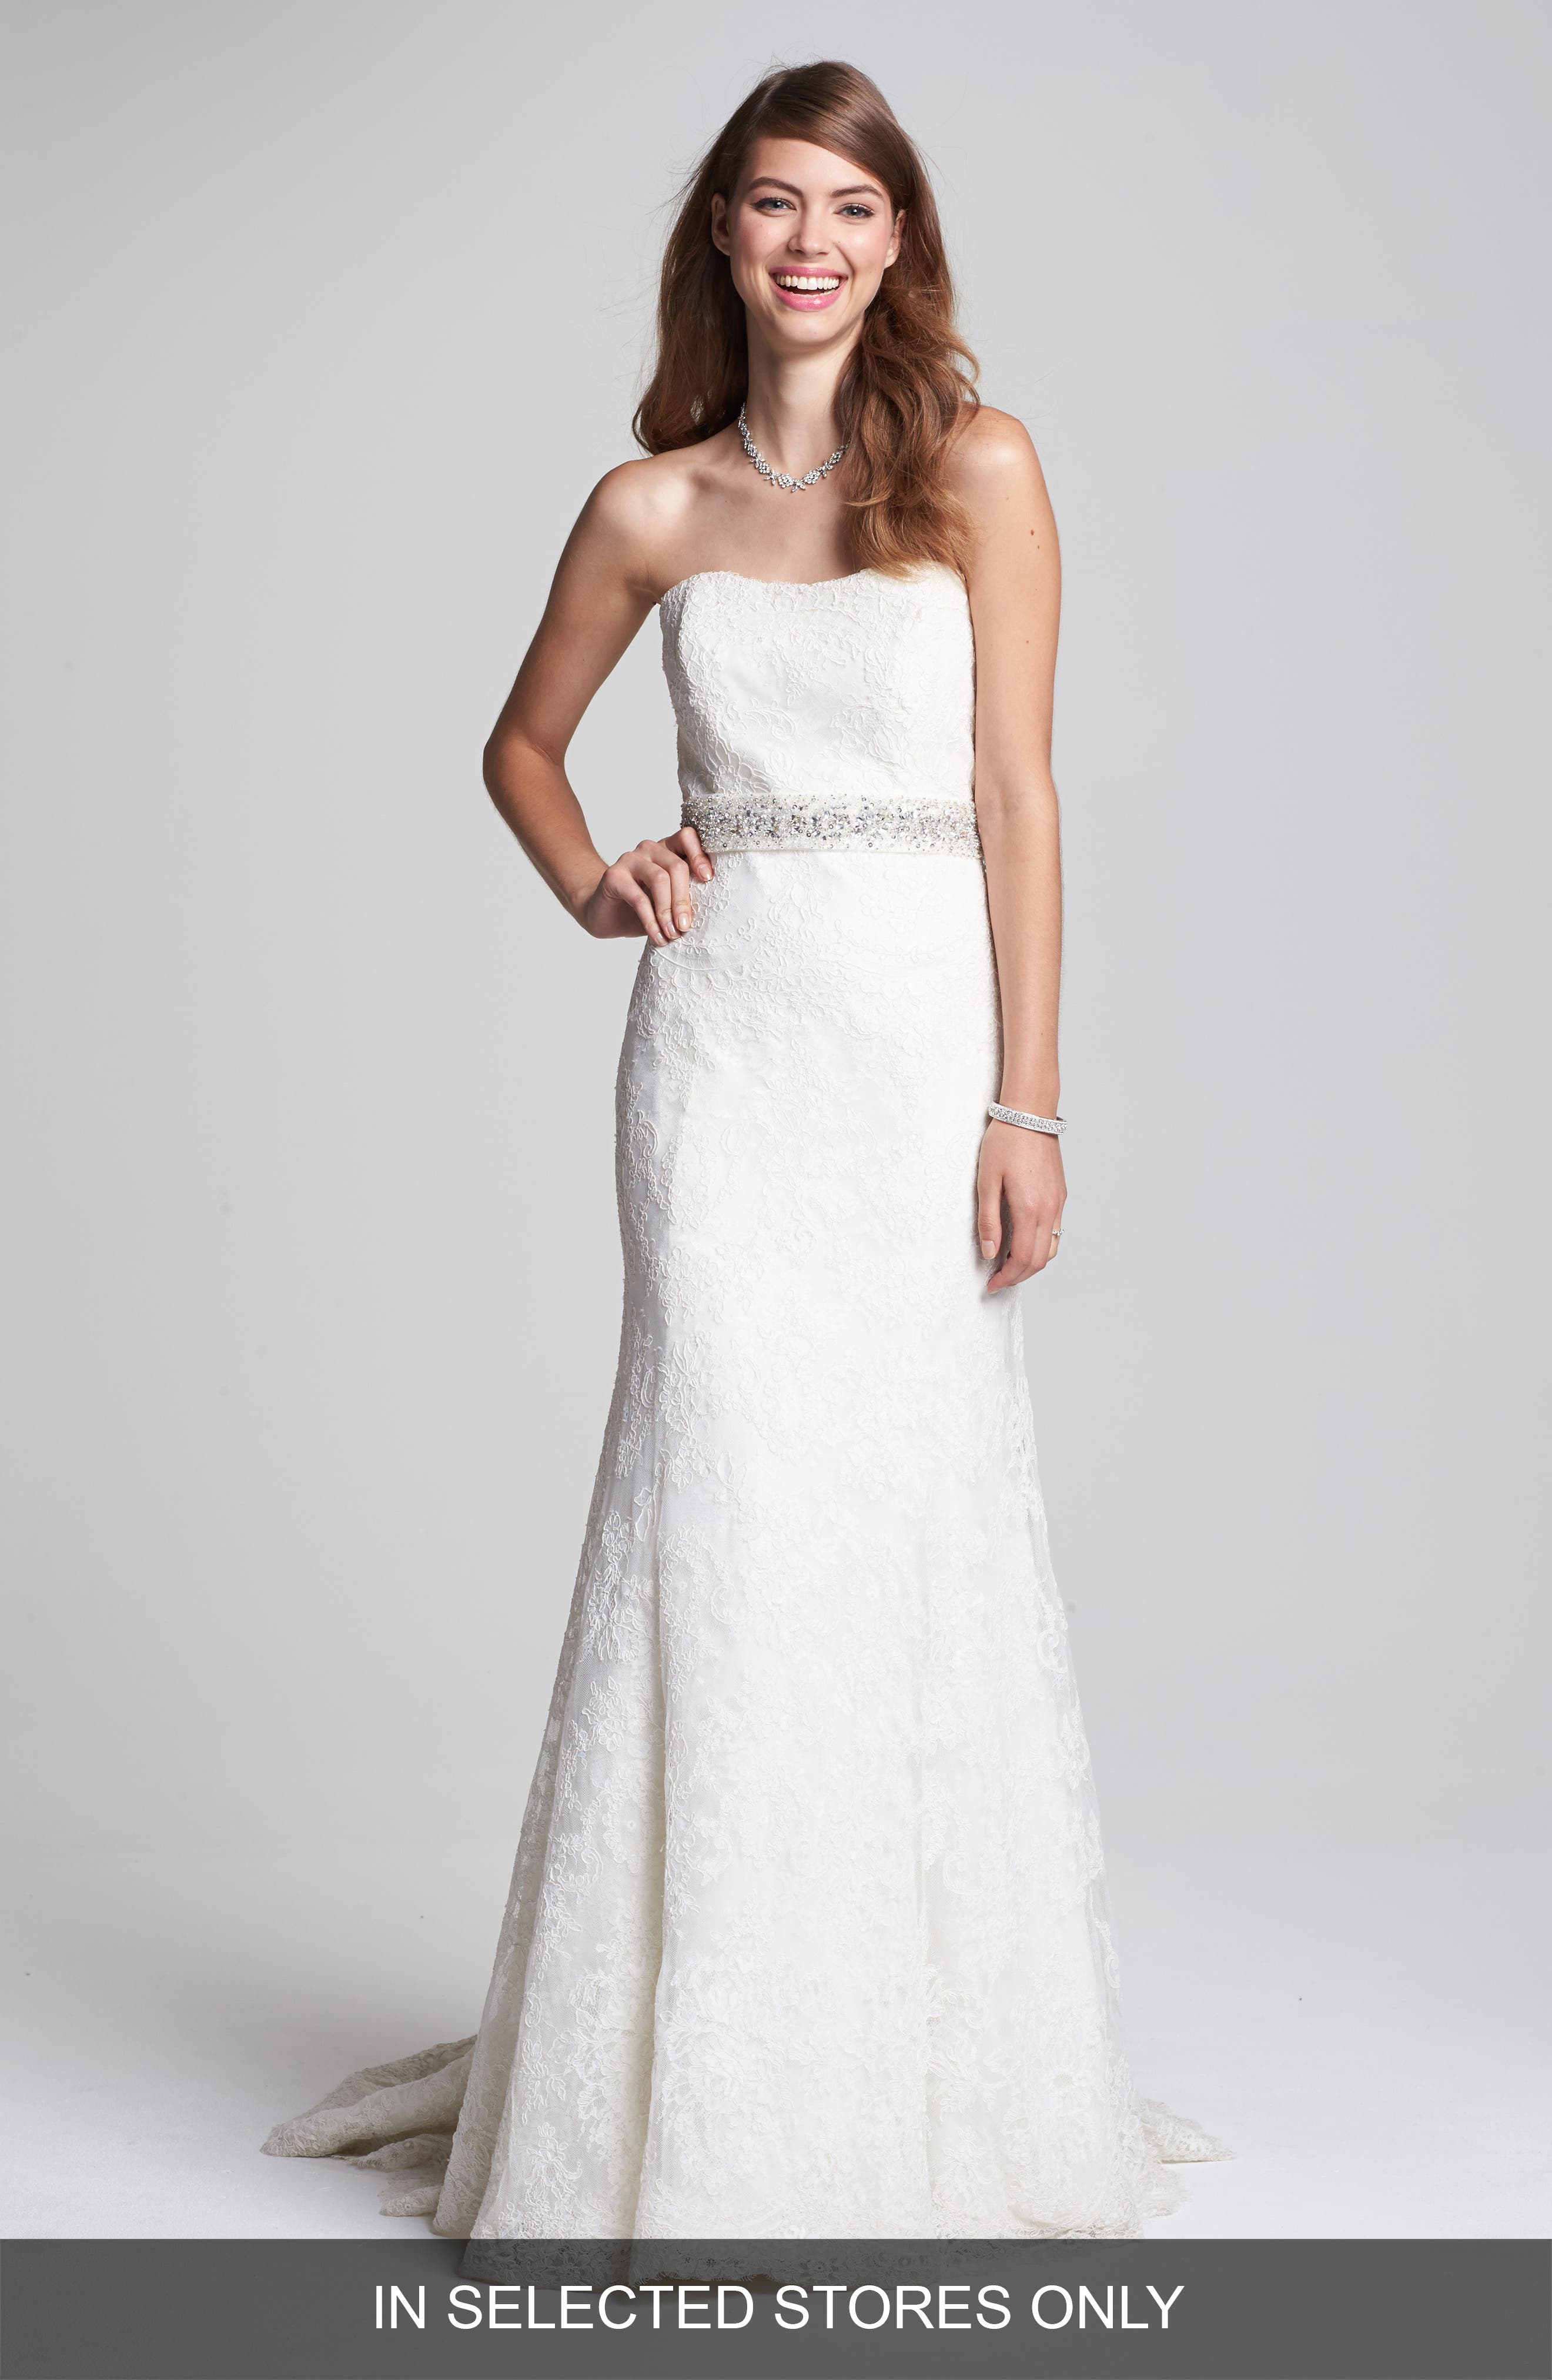 Main Image - BLISS Monique Lhuillier Strapless Lace Wedding Dress with Beaded Waist (In Stores Only)